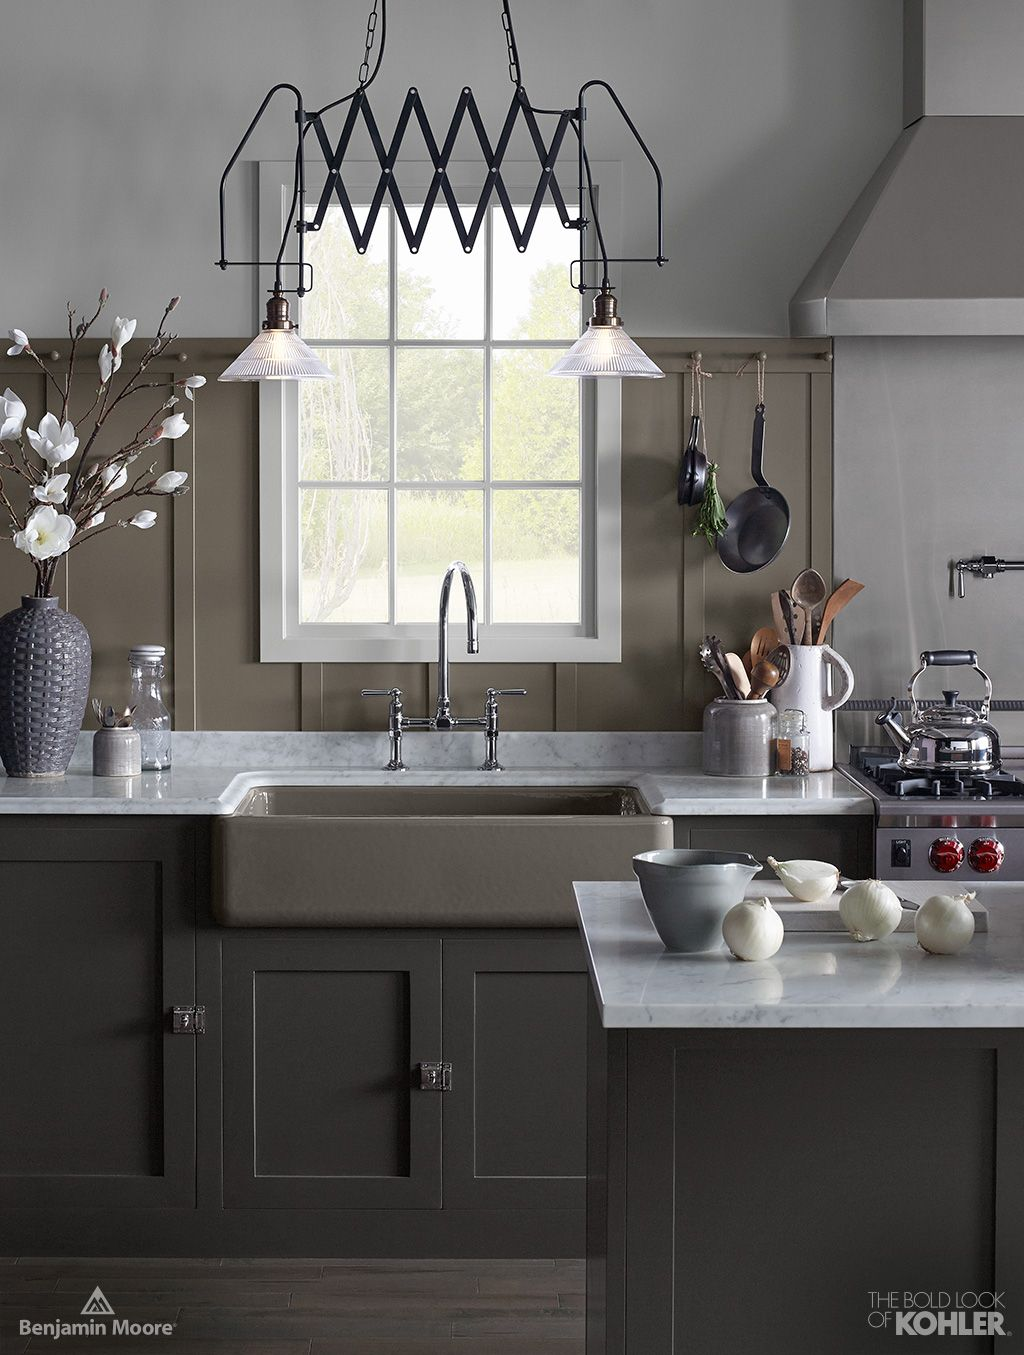 The Bold Look of Kitchen sink lighting, Cast iron